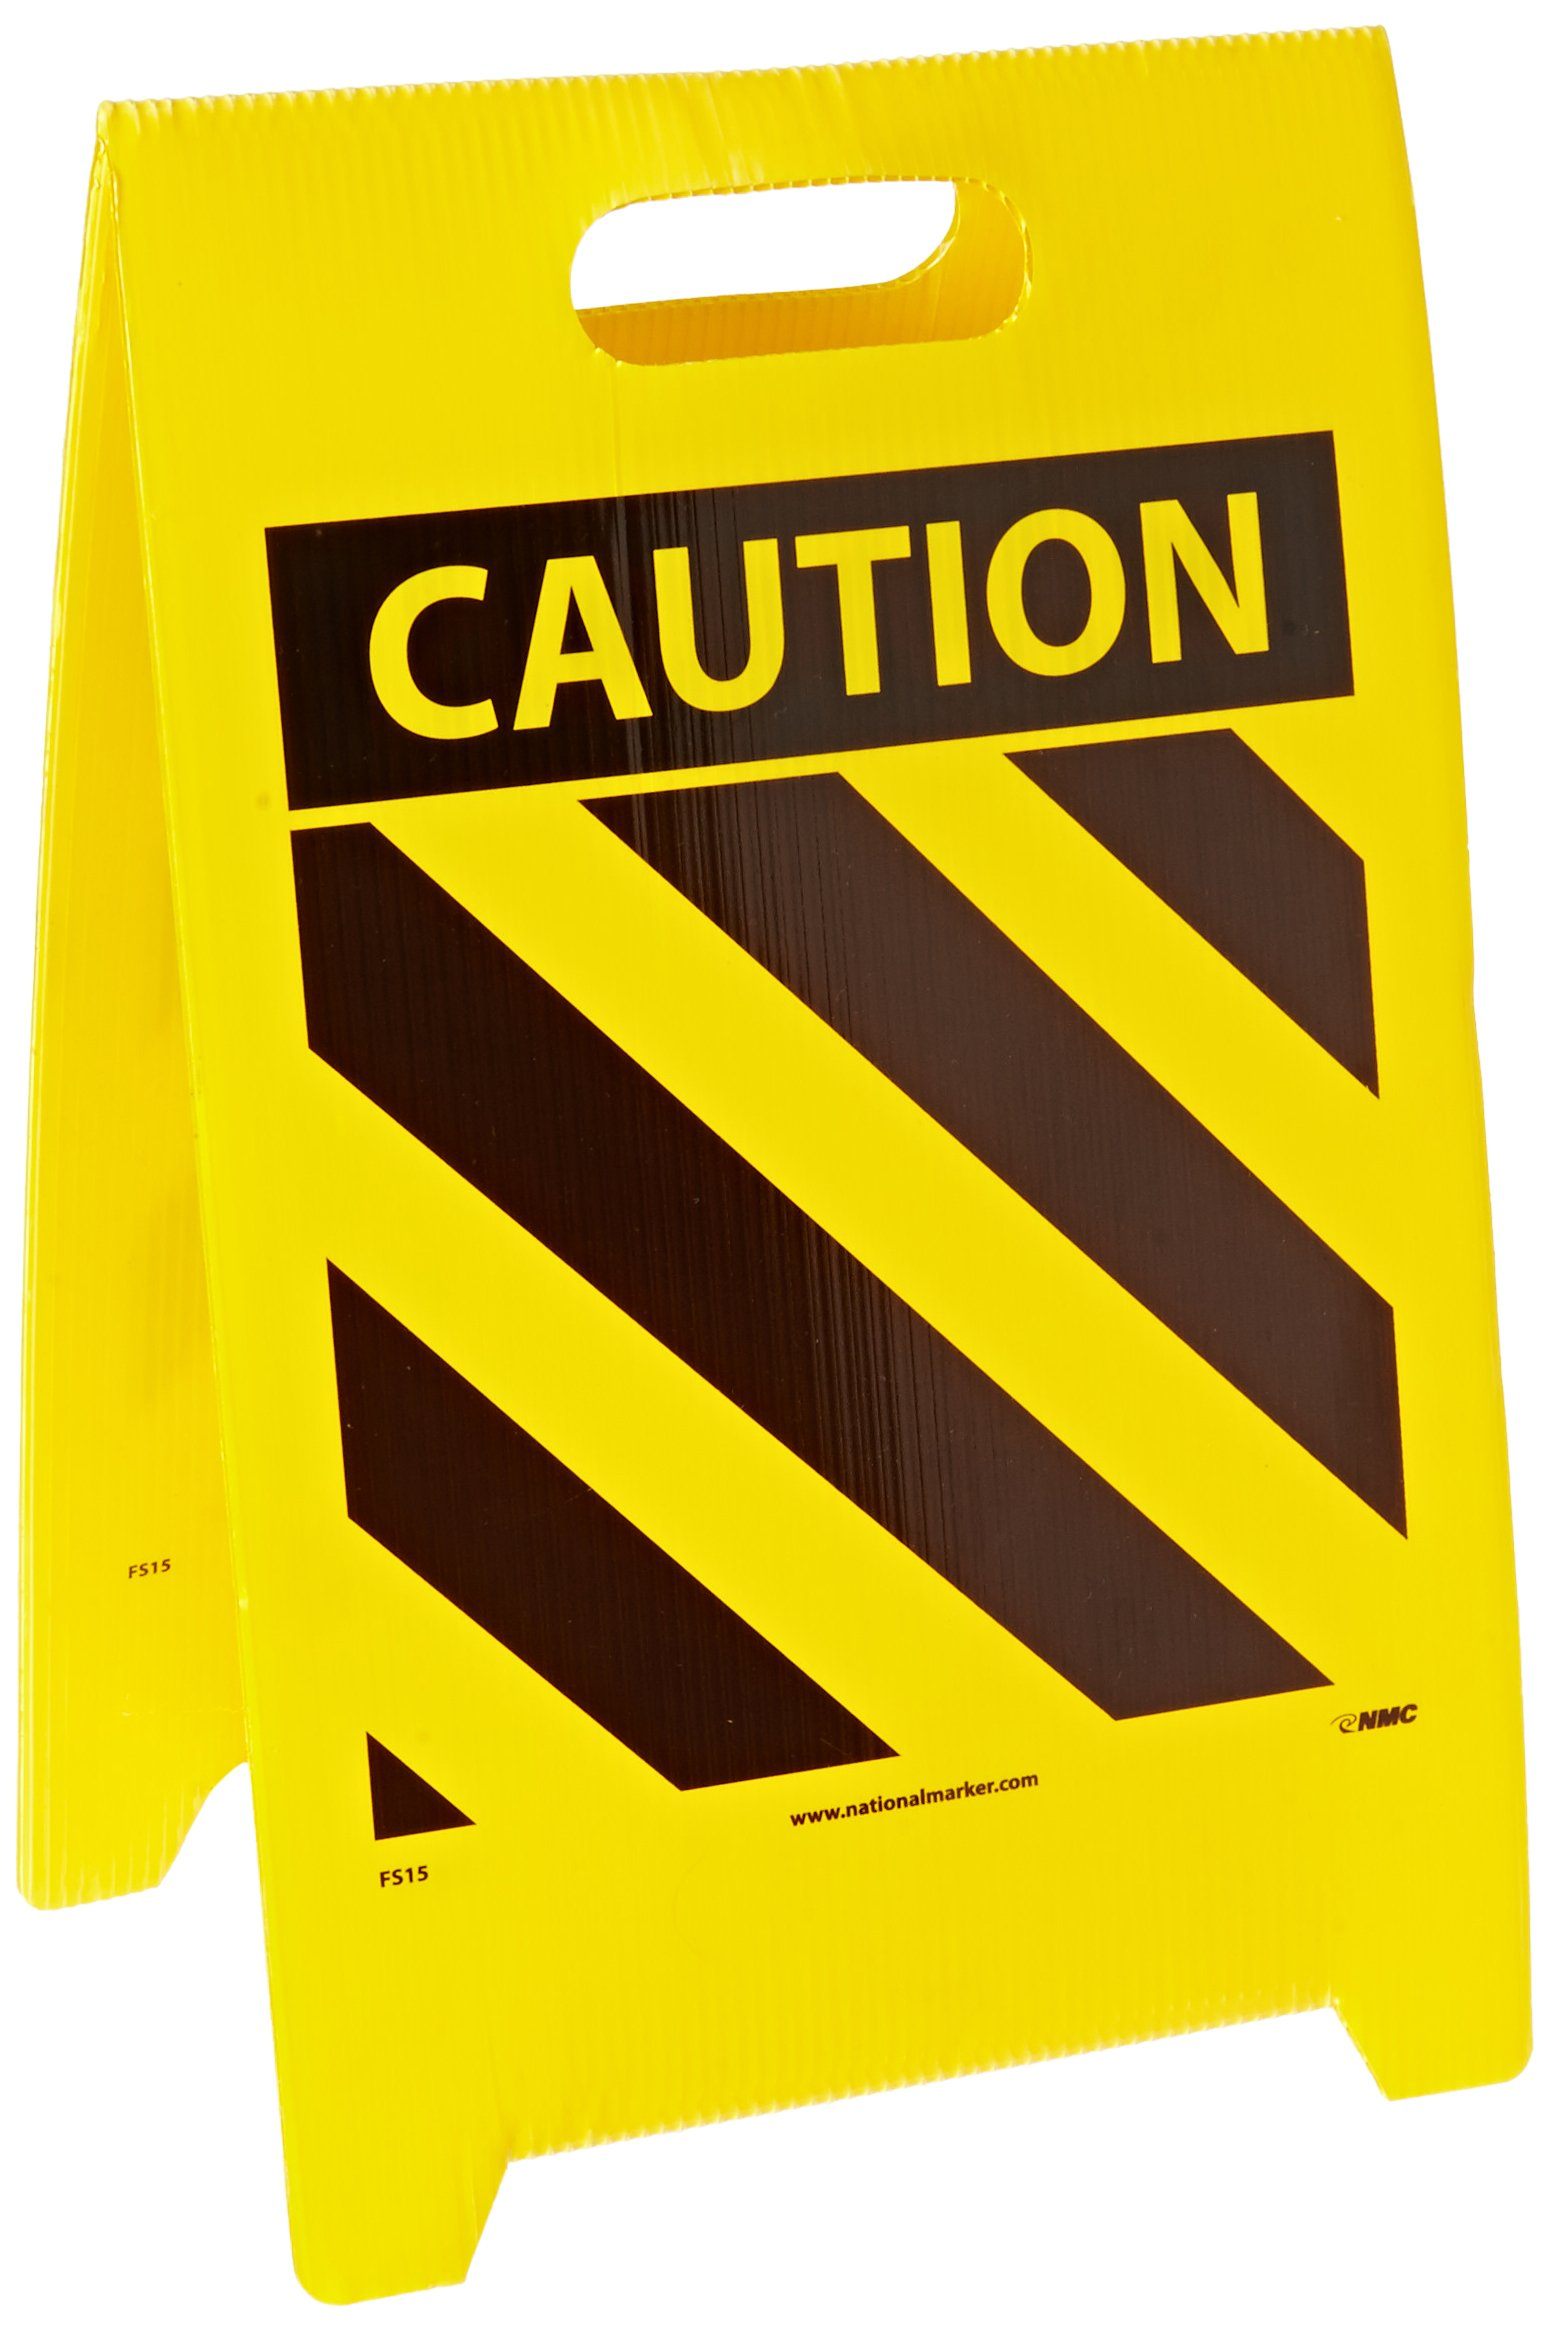 NMC FS15 Double Sided Floor Sign, Legend ''CAUTION'' with Hazard Stripe, 12'' Length x 20'' Height, Coroplast, Yellow/Black